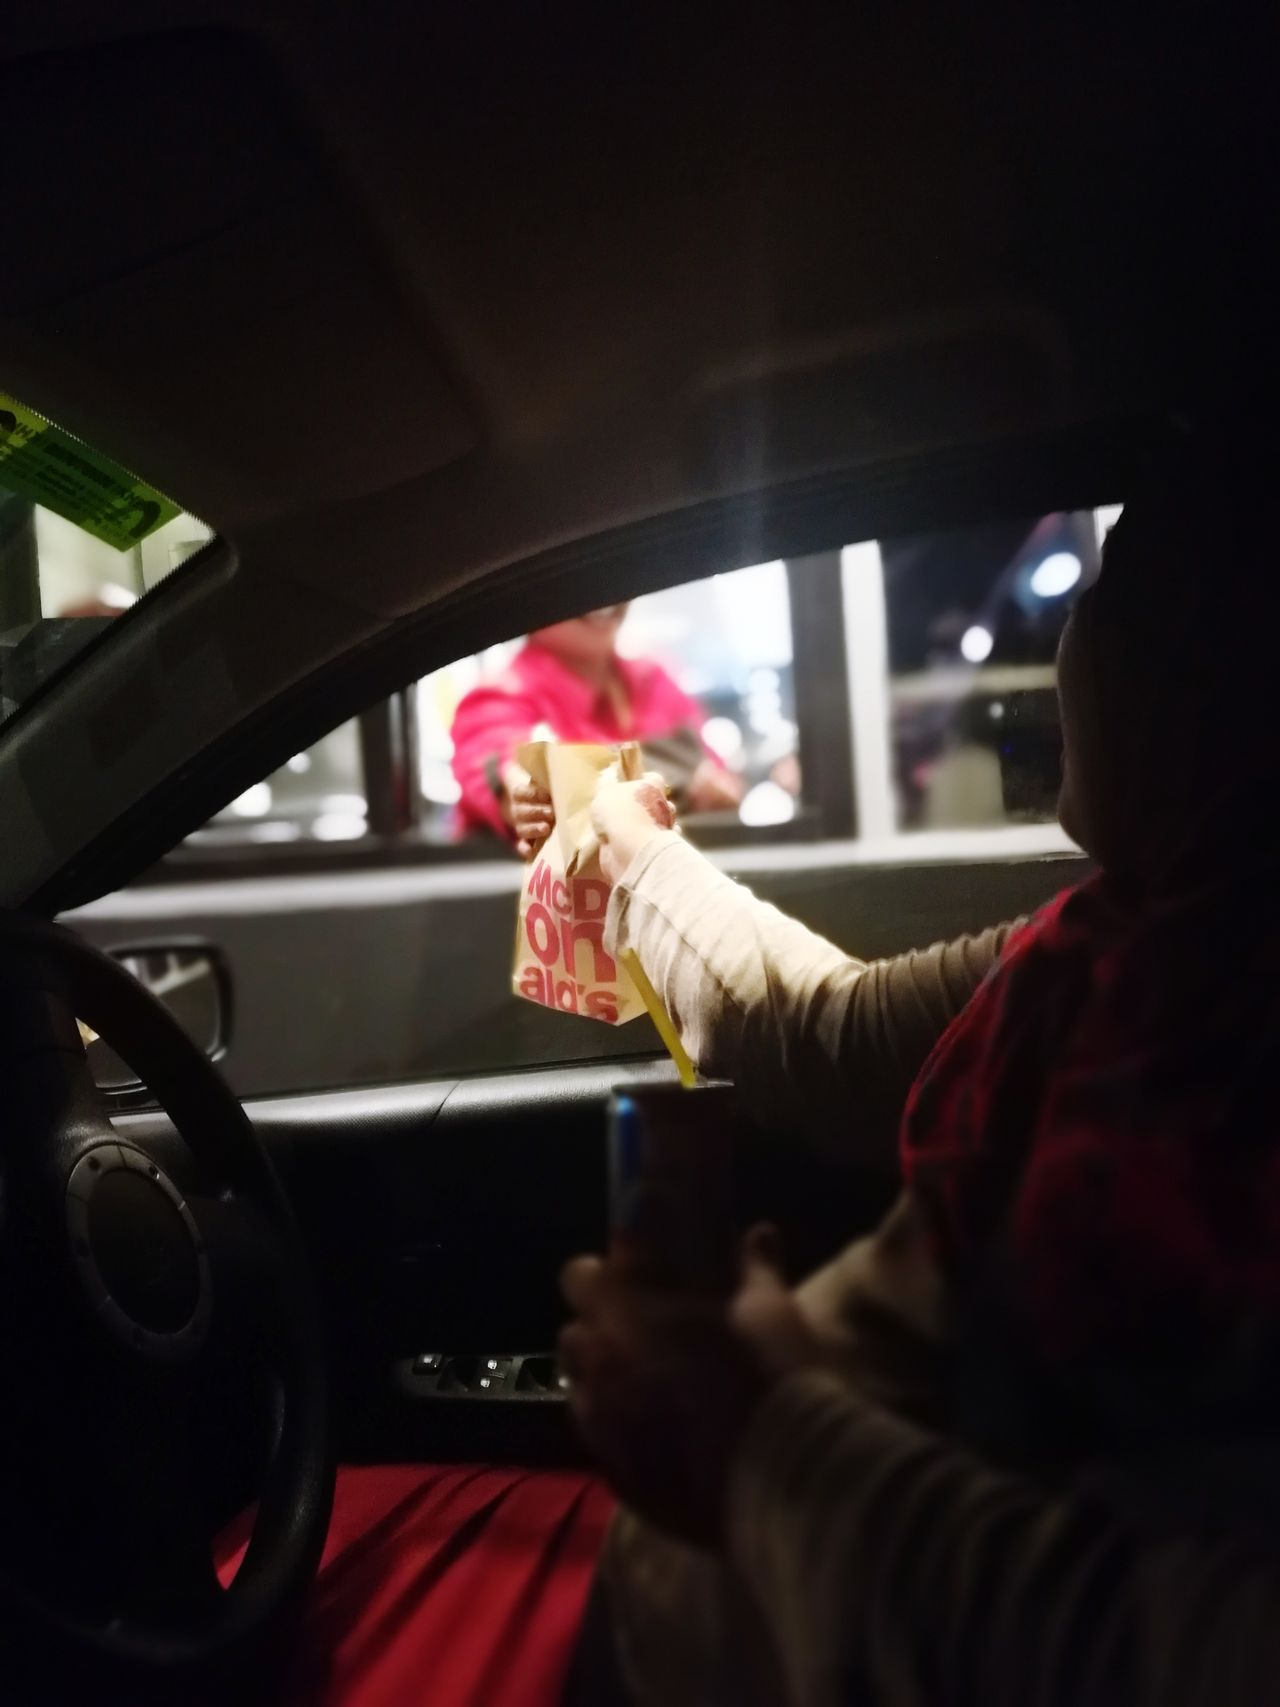 McDonald's DriveThru Service With A Smile EyeEmNewHere